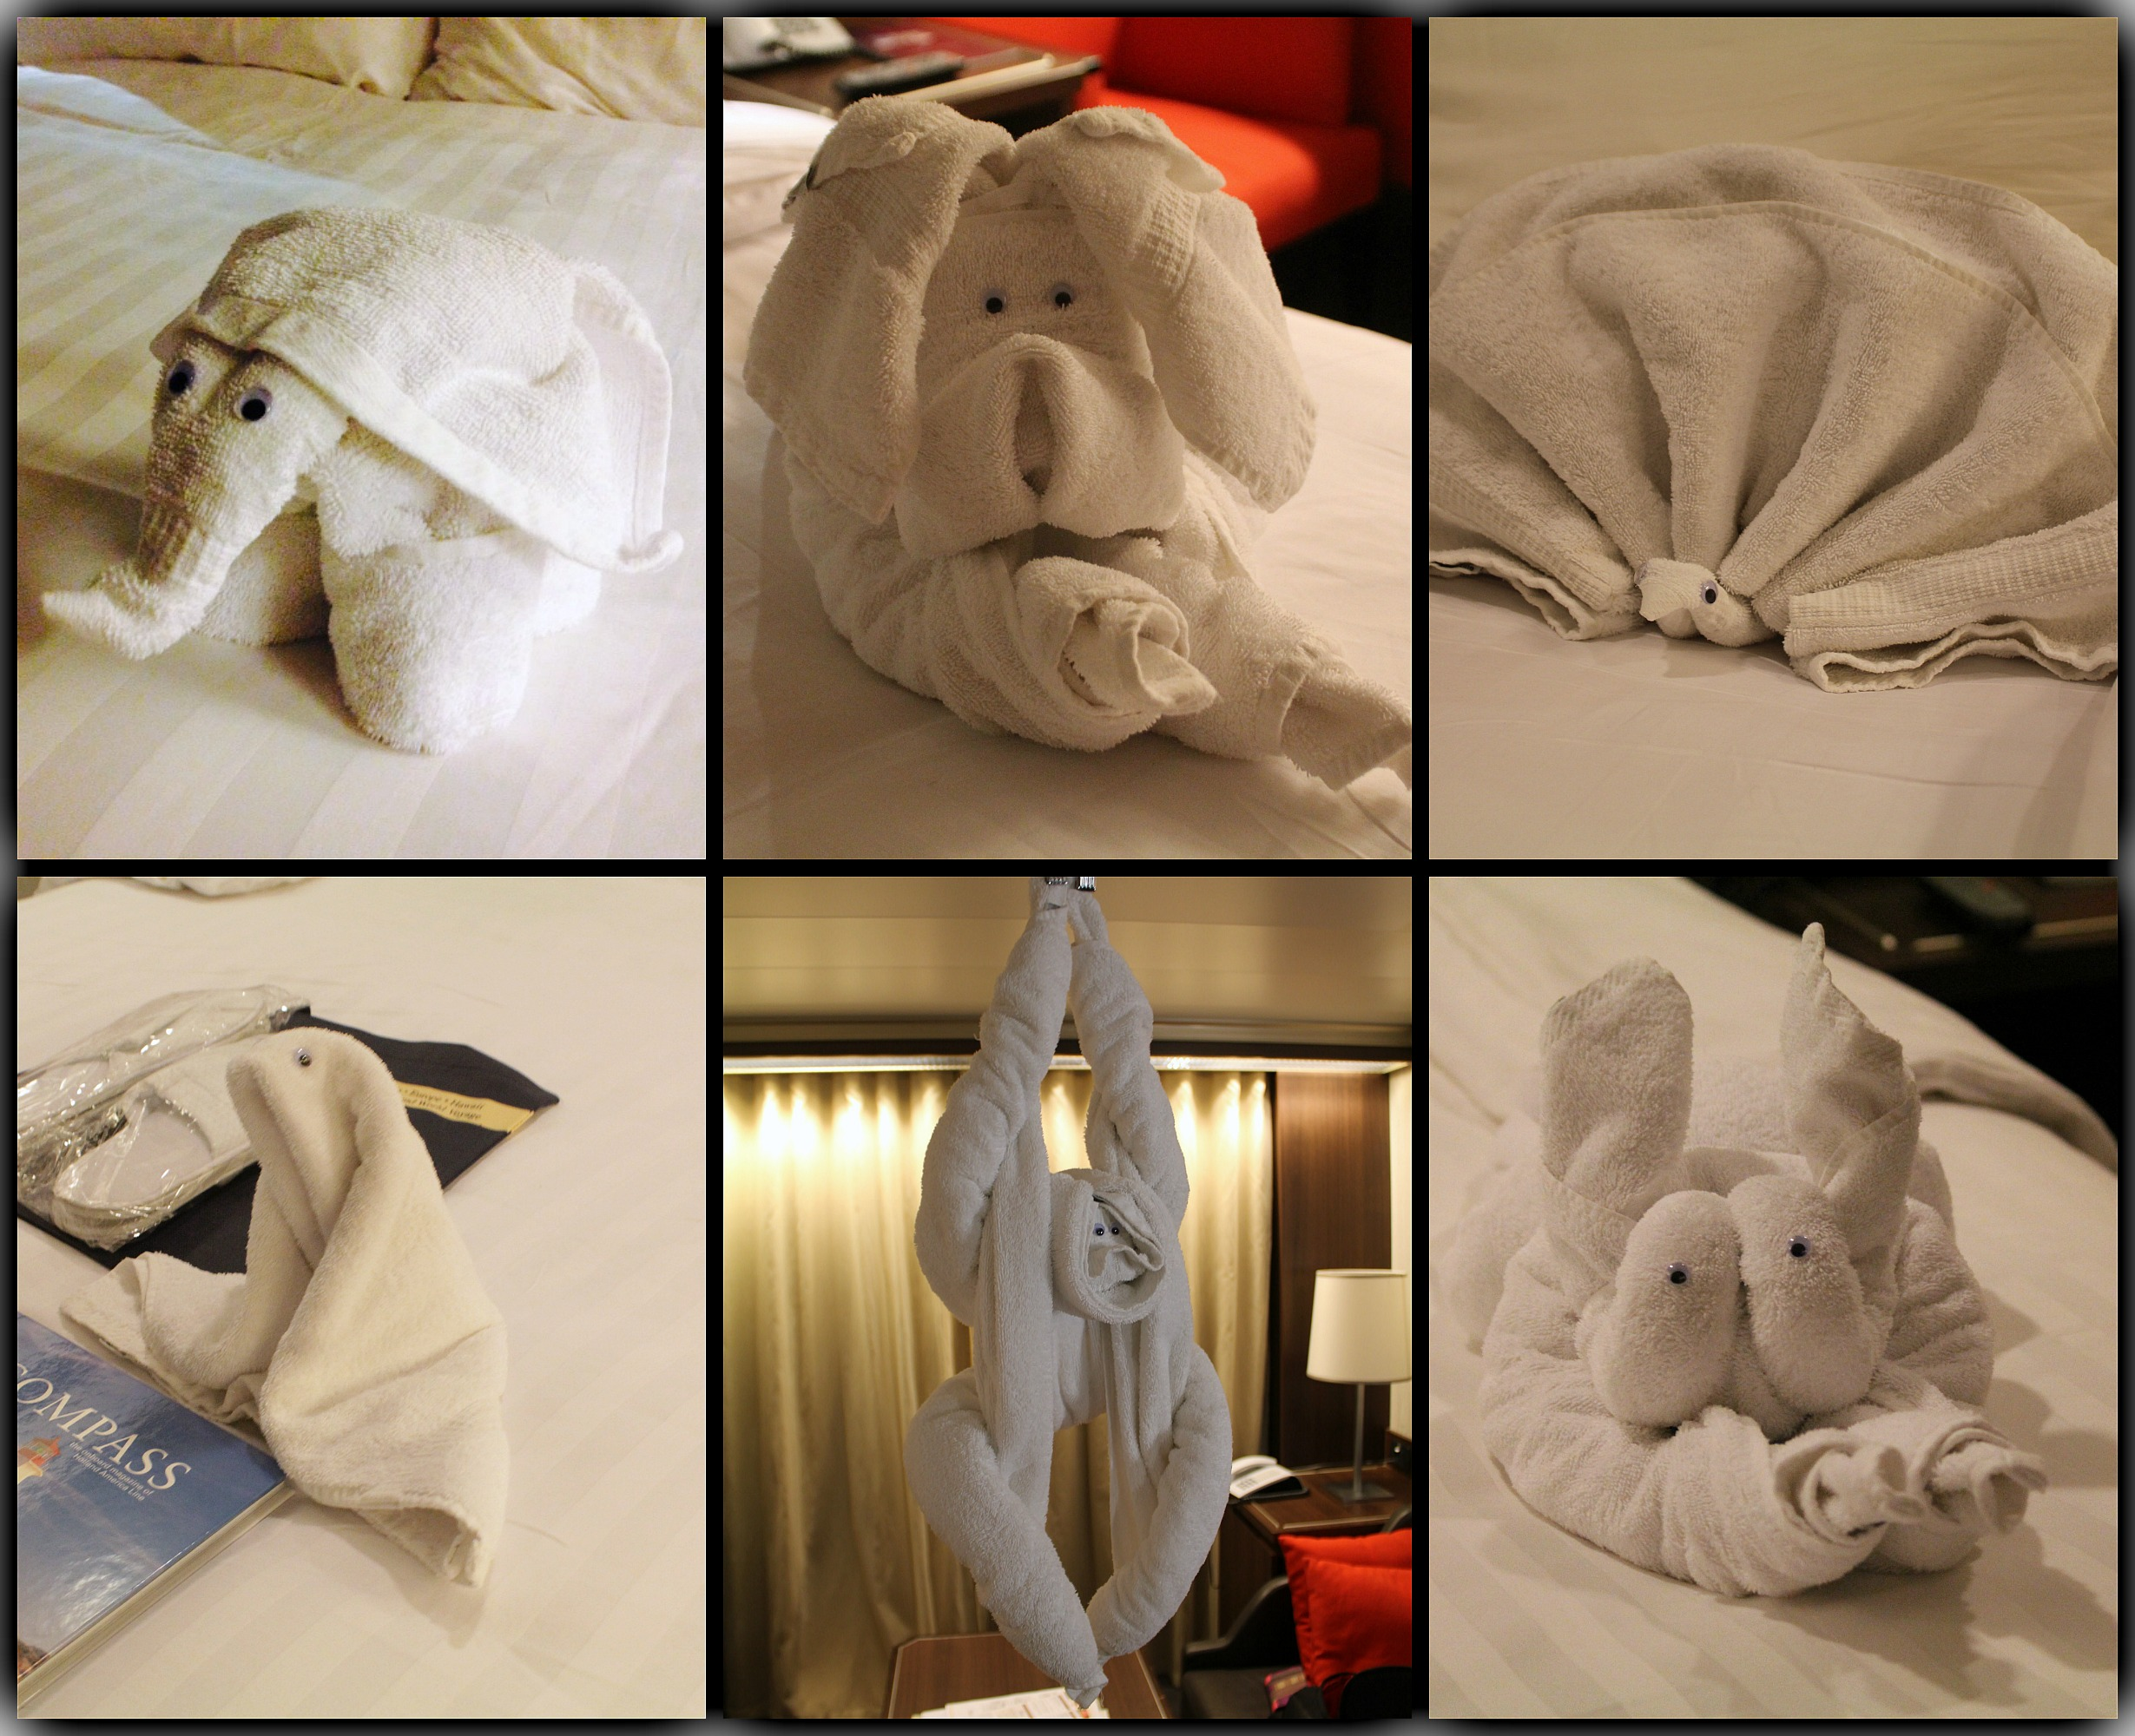 eurodam cabin 6096 holland america towel animals